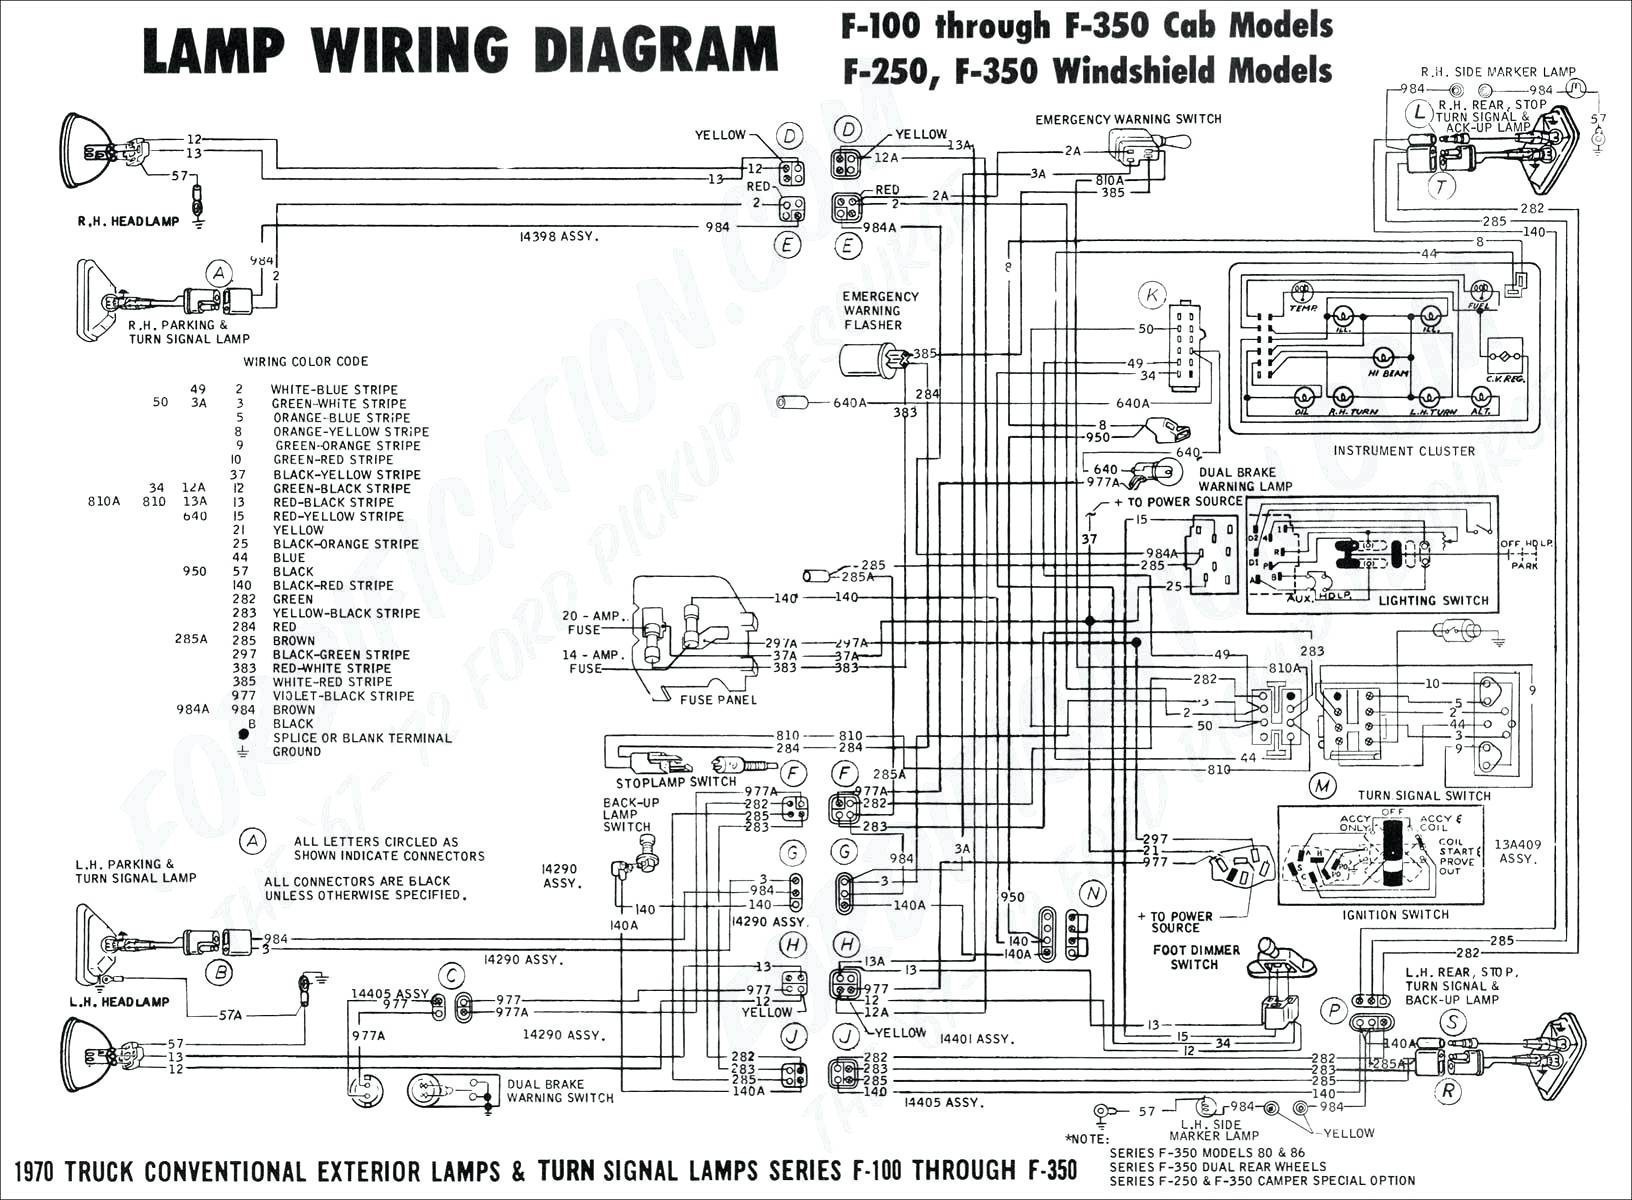 2003 Trailblazer Tail Light Circuit Diagram Awesome